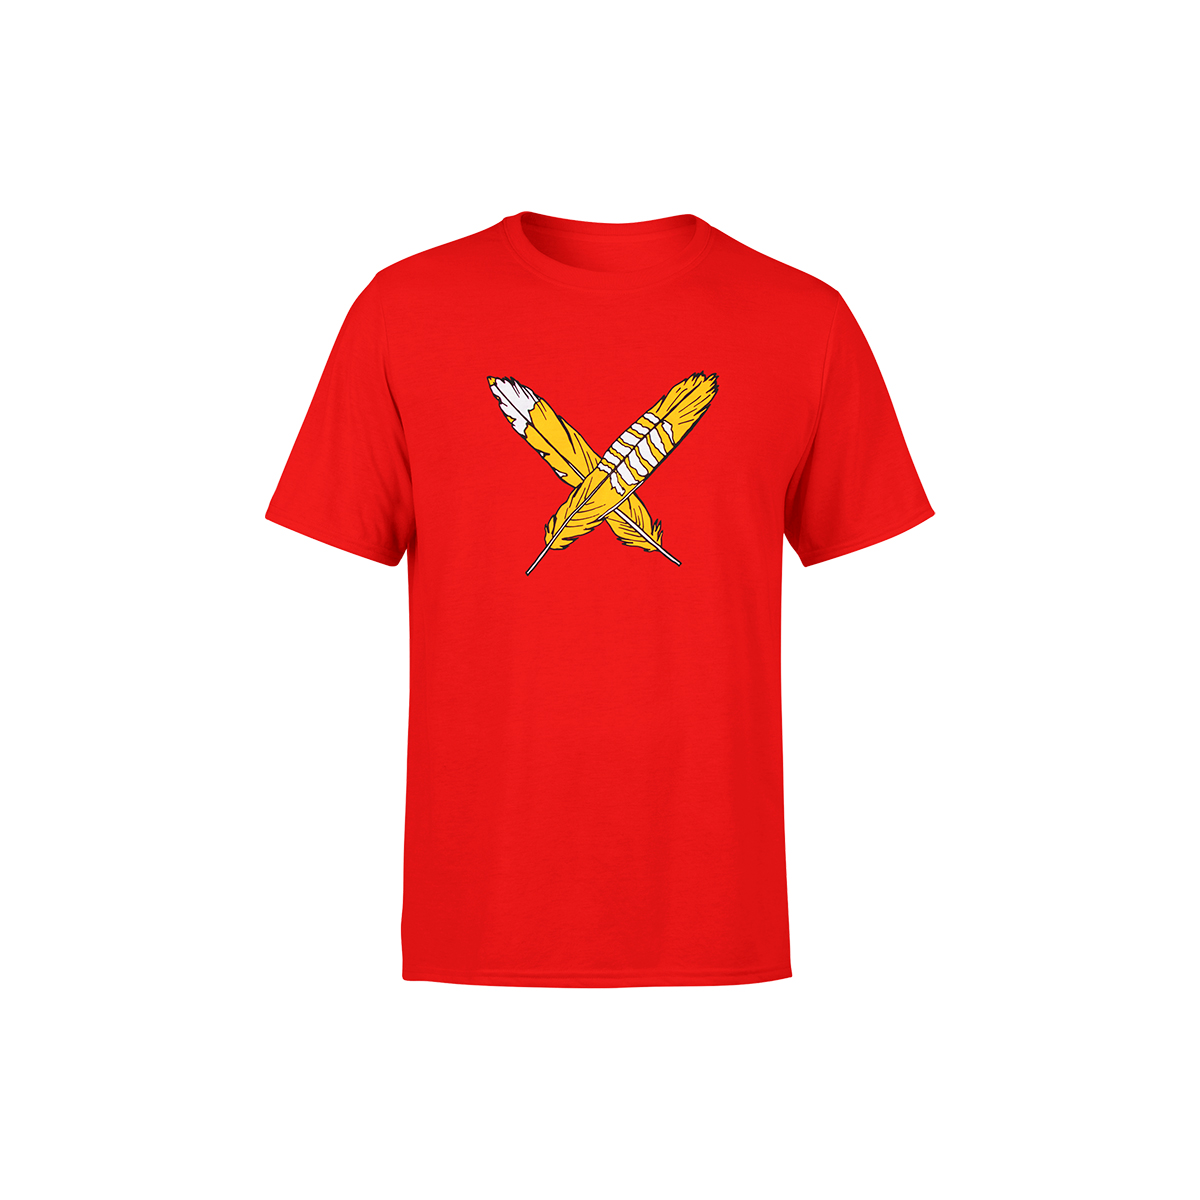 Red Feathers Kids Tee